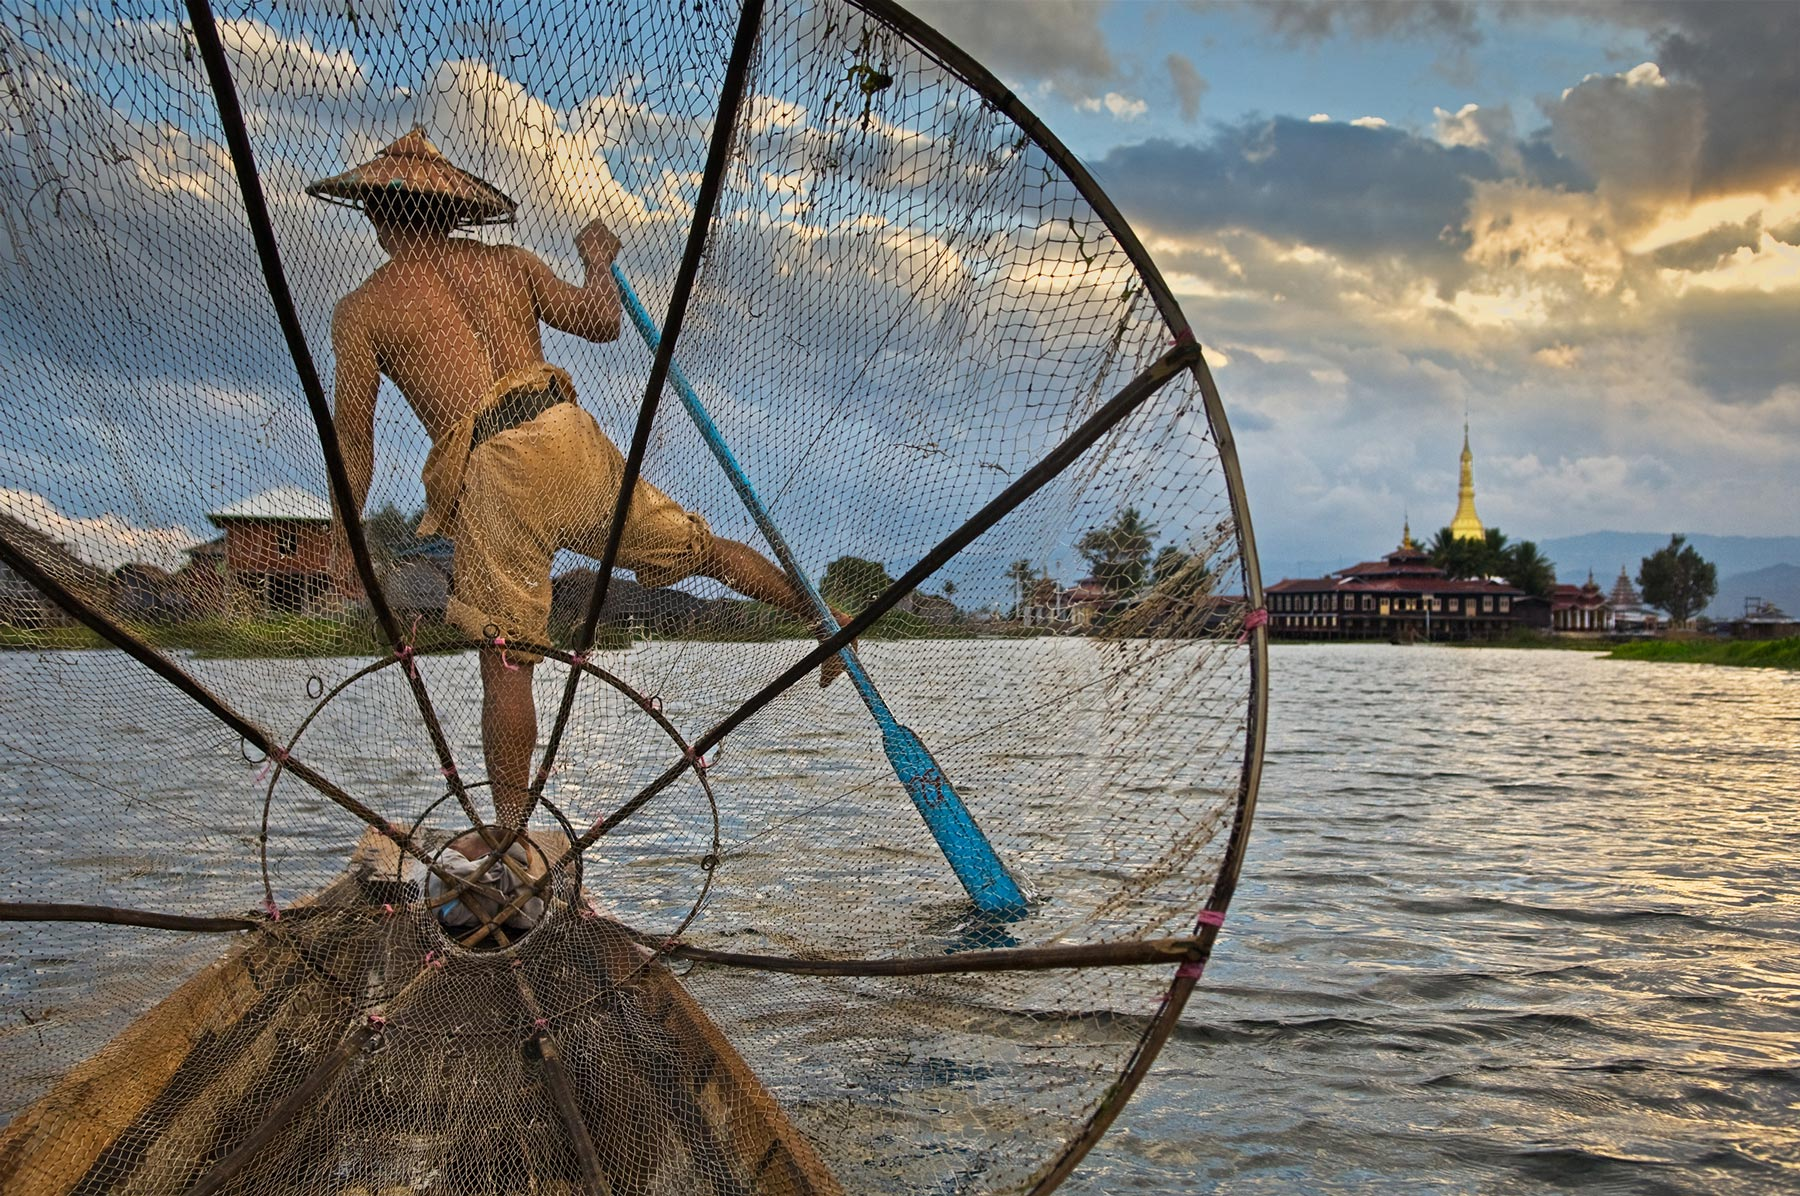 Fisherman on Inle Lake by Steve McCurry